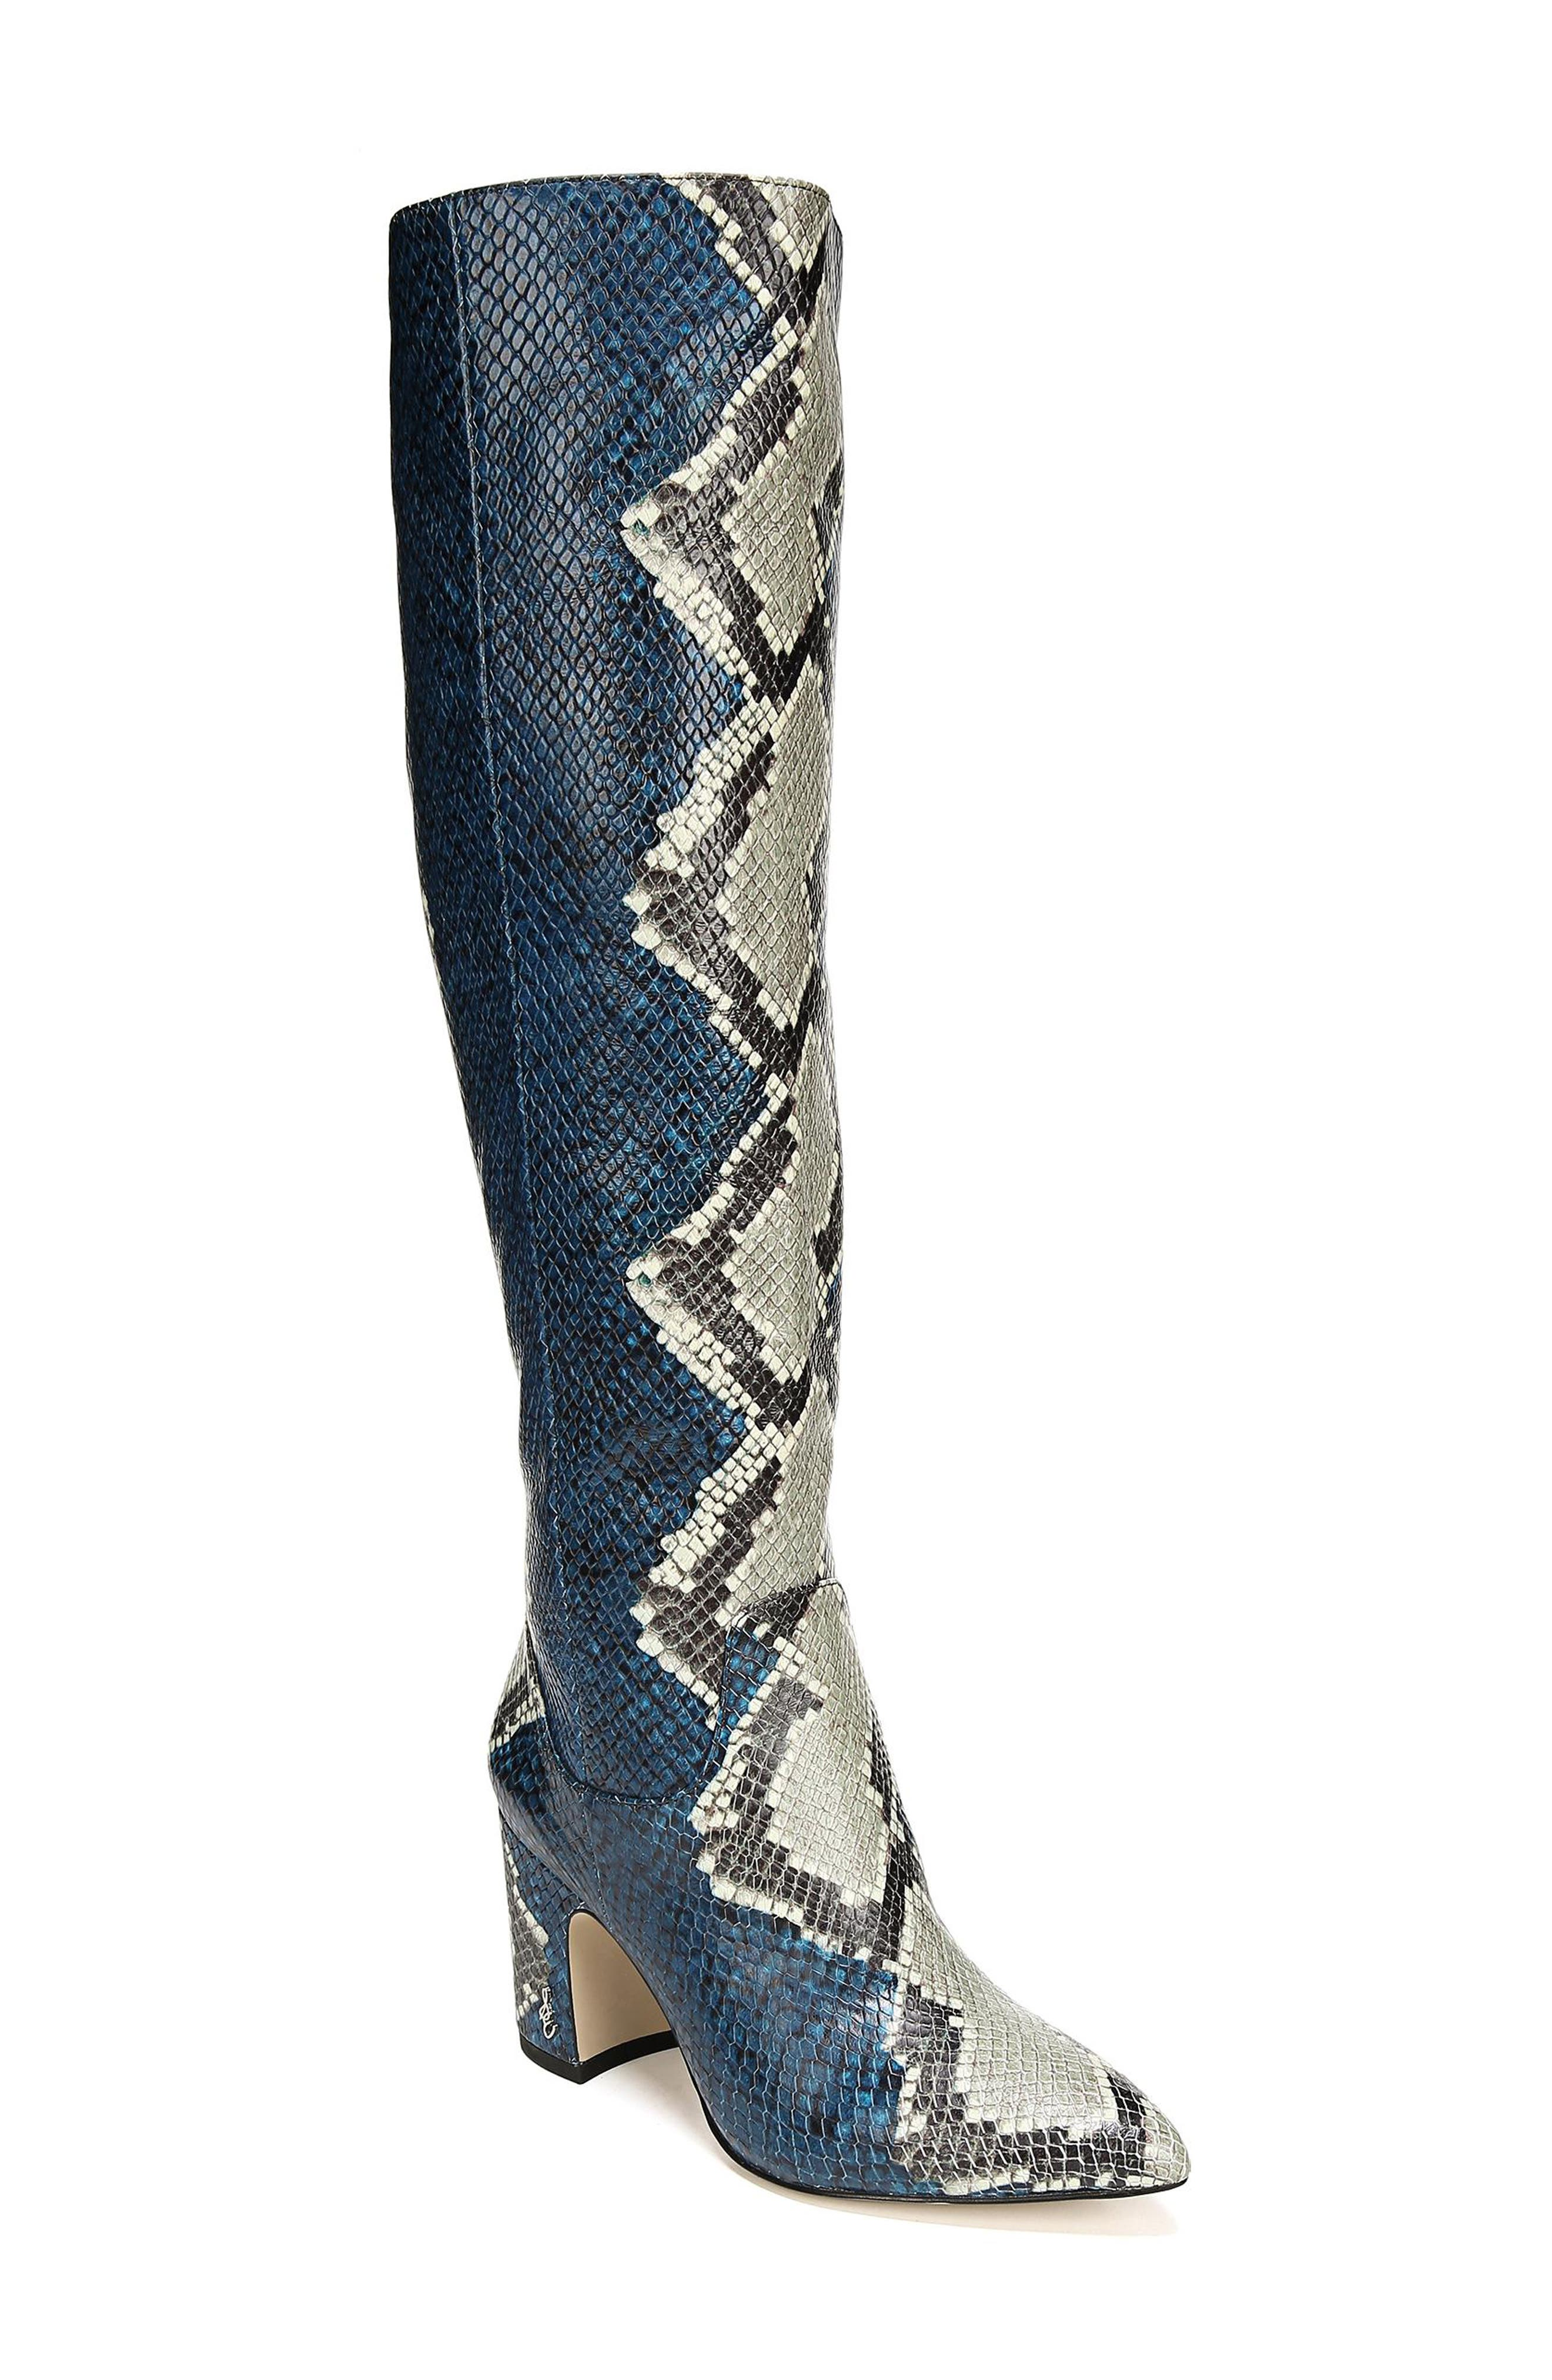 Hai Knee High Boot,                             Main thumbnail 1, color,                             PEACOCK EMBOSSED LEATHER